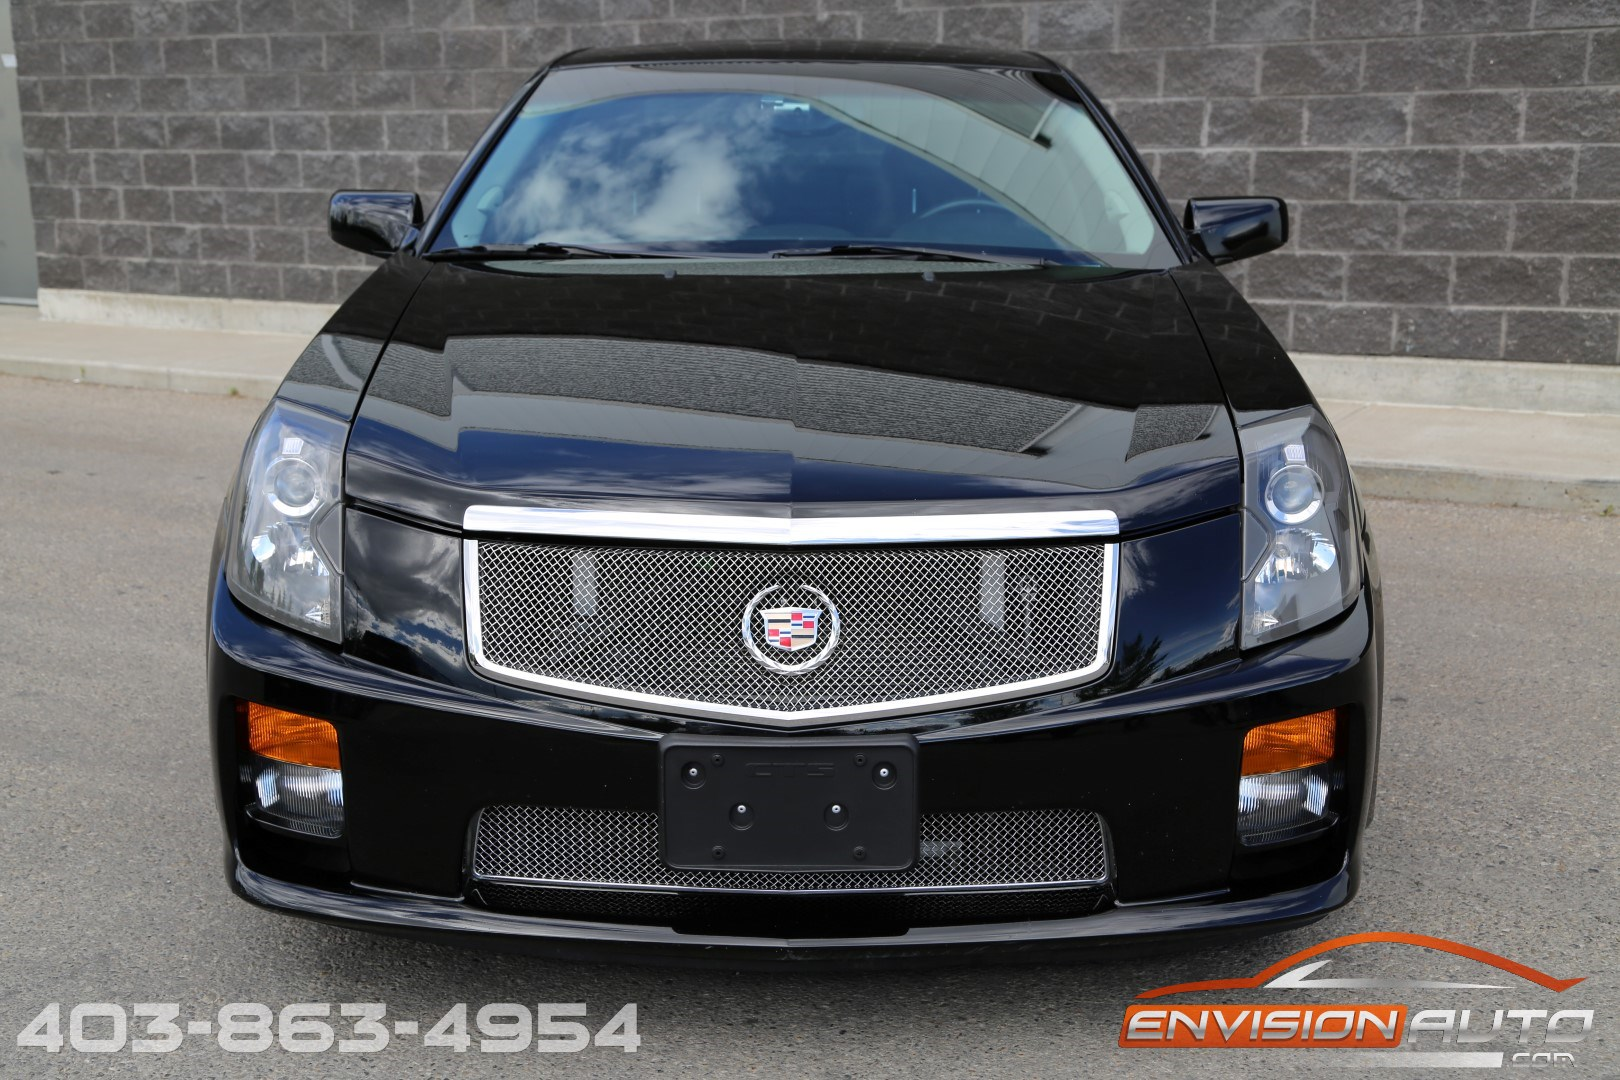 2005 cadillac cts v sedan 6 speed manual 470 rwhp envision auto calgary highline. Black Bedroom Furniture Sets. Home Design Ideas